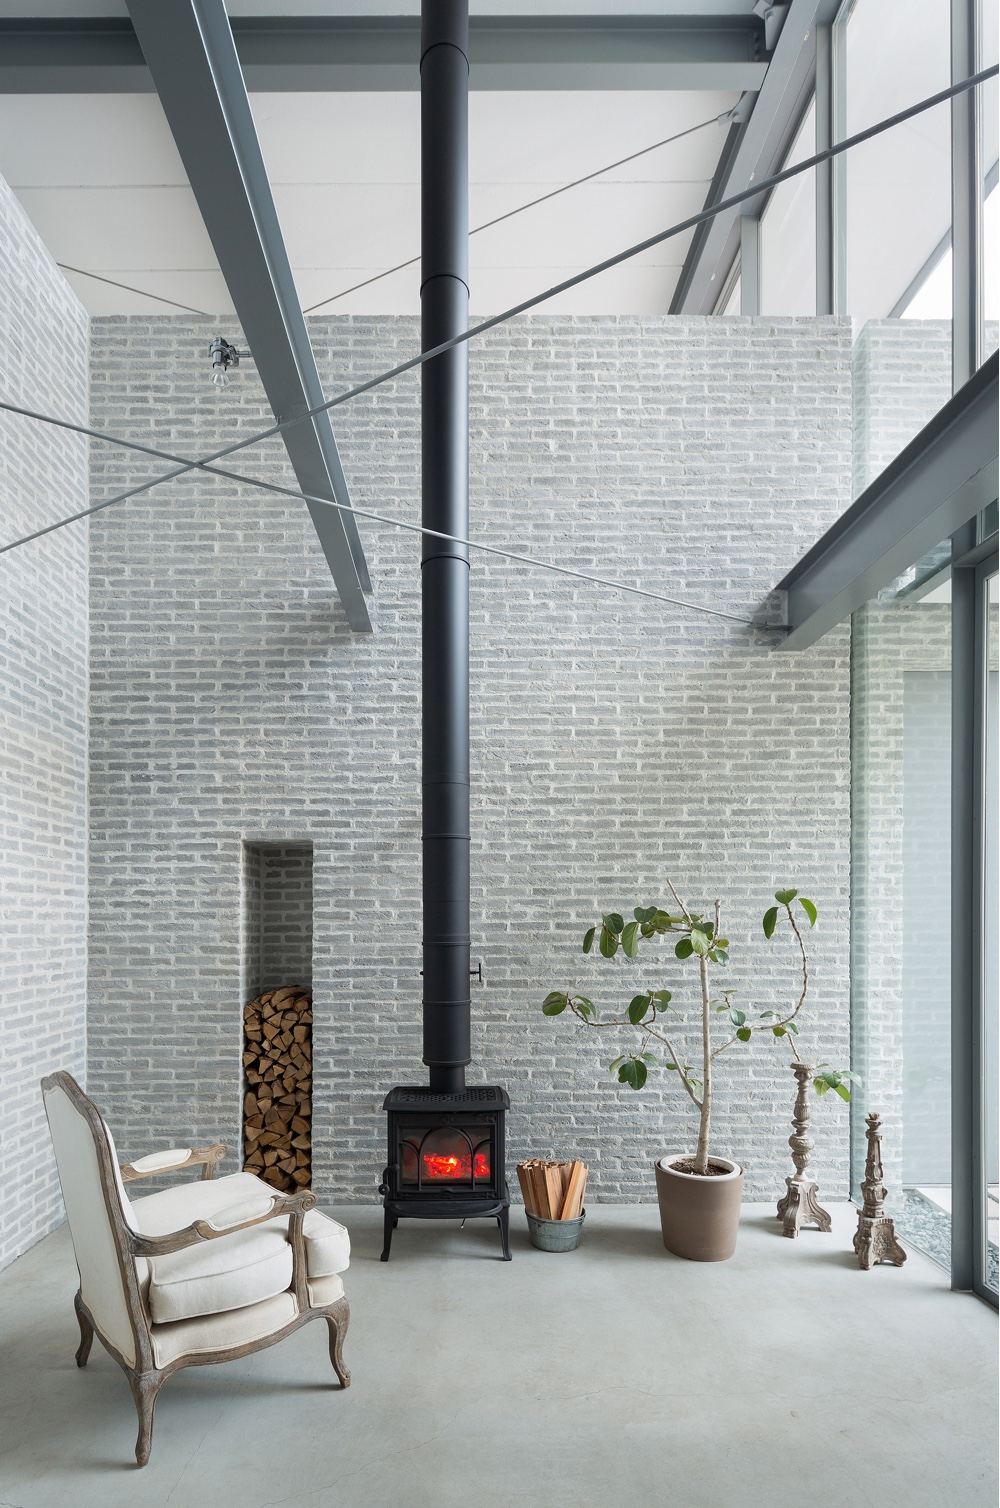 A cosy fireside in a house in Setagaya, Tokyo, by Comma Design. Image © Takumi Ota via ArchDaily.